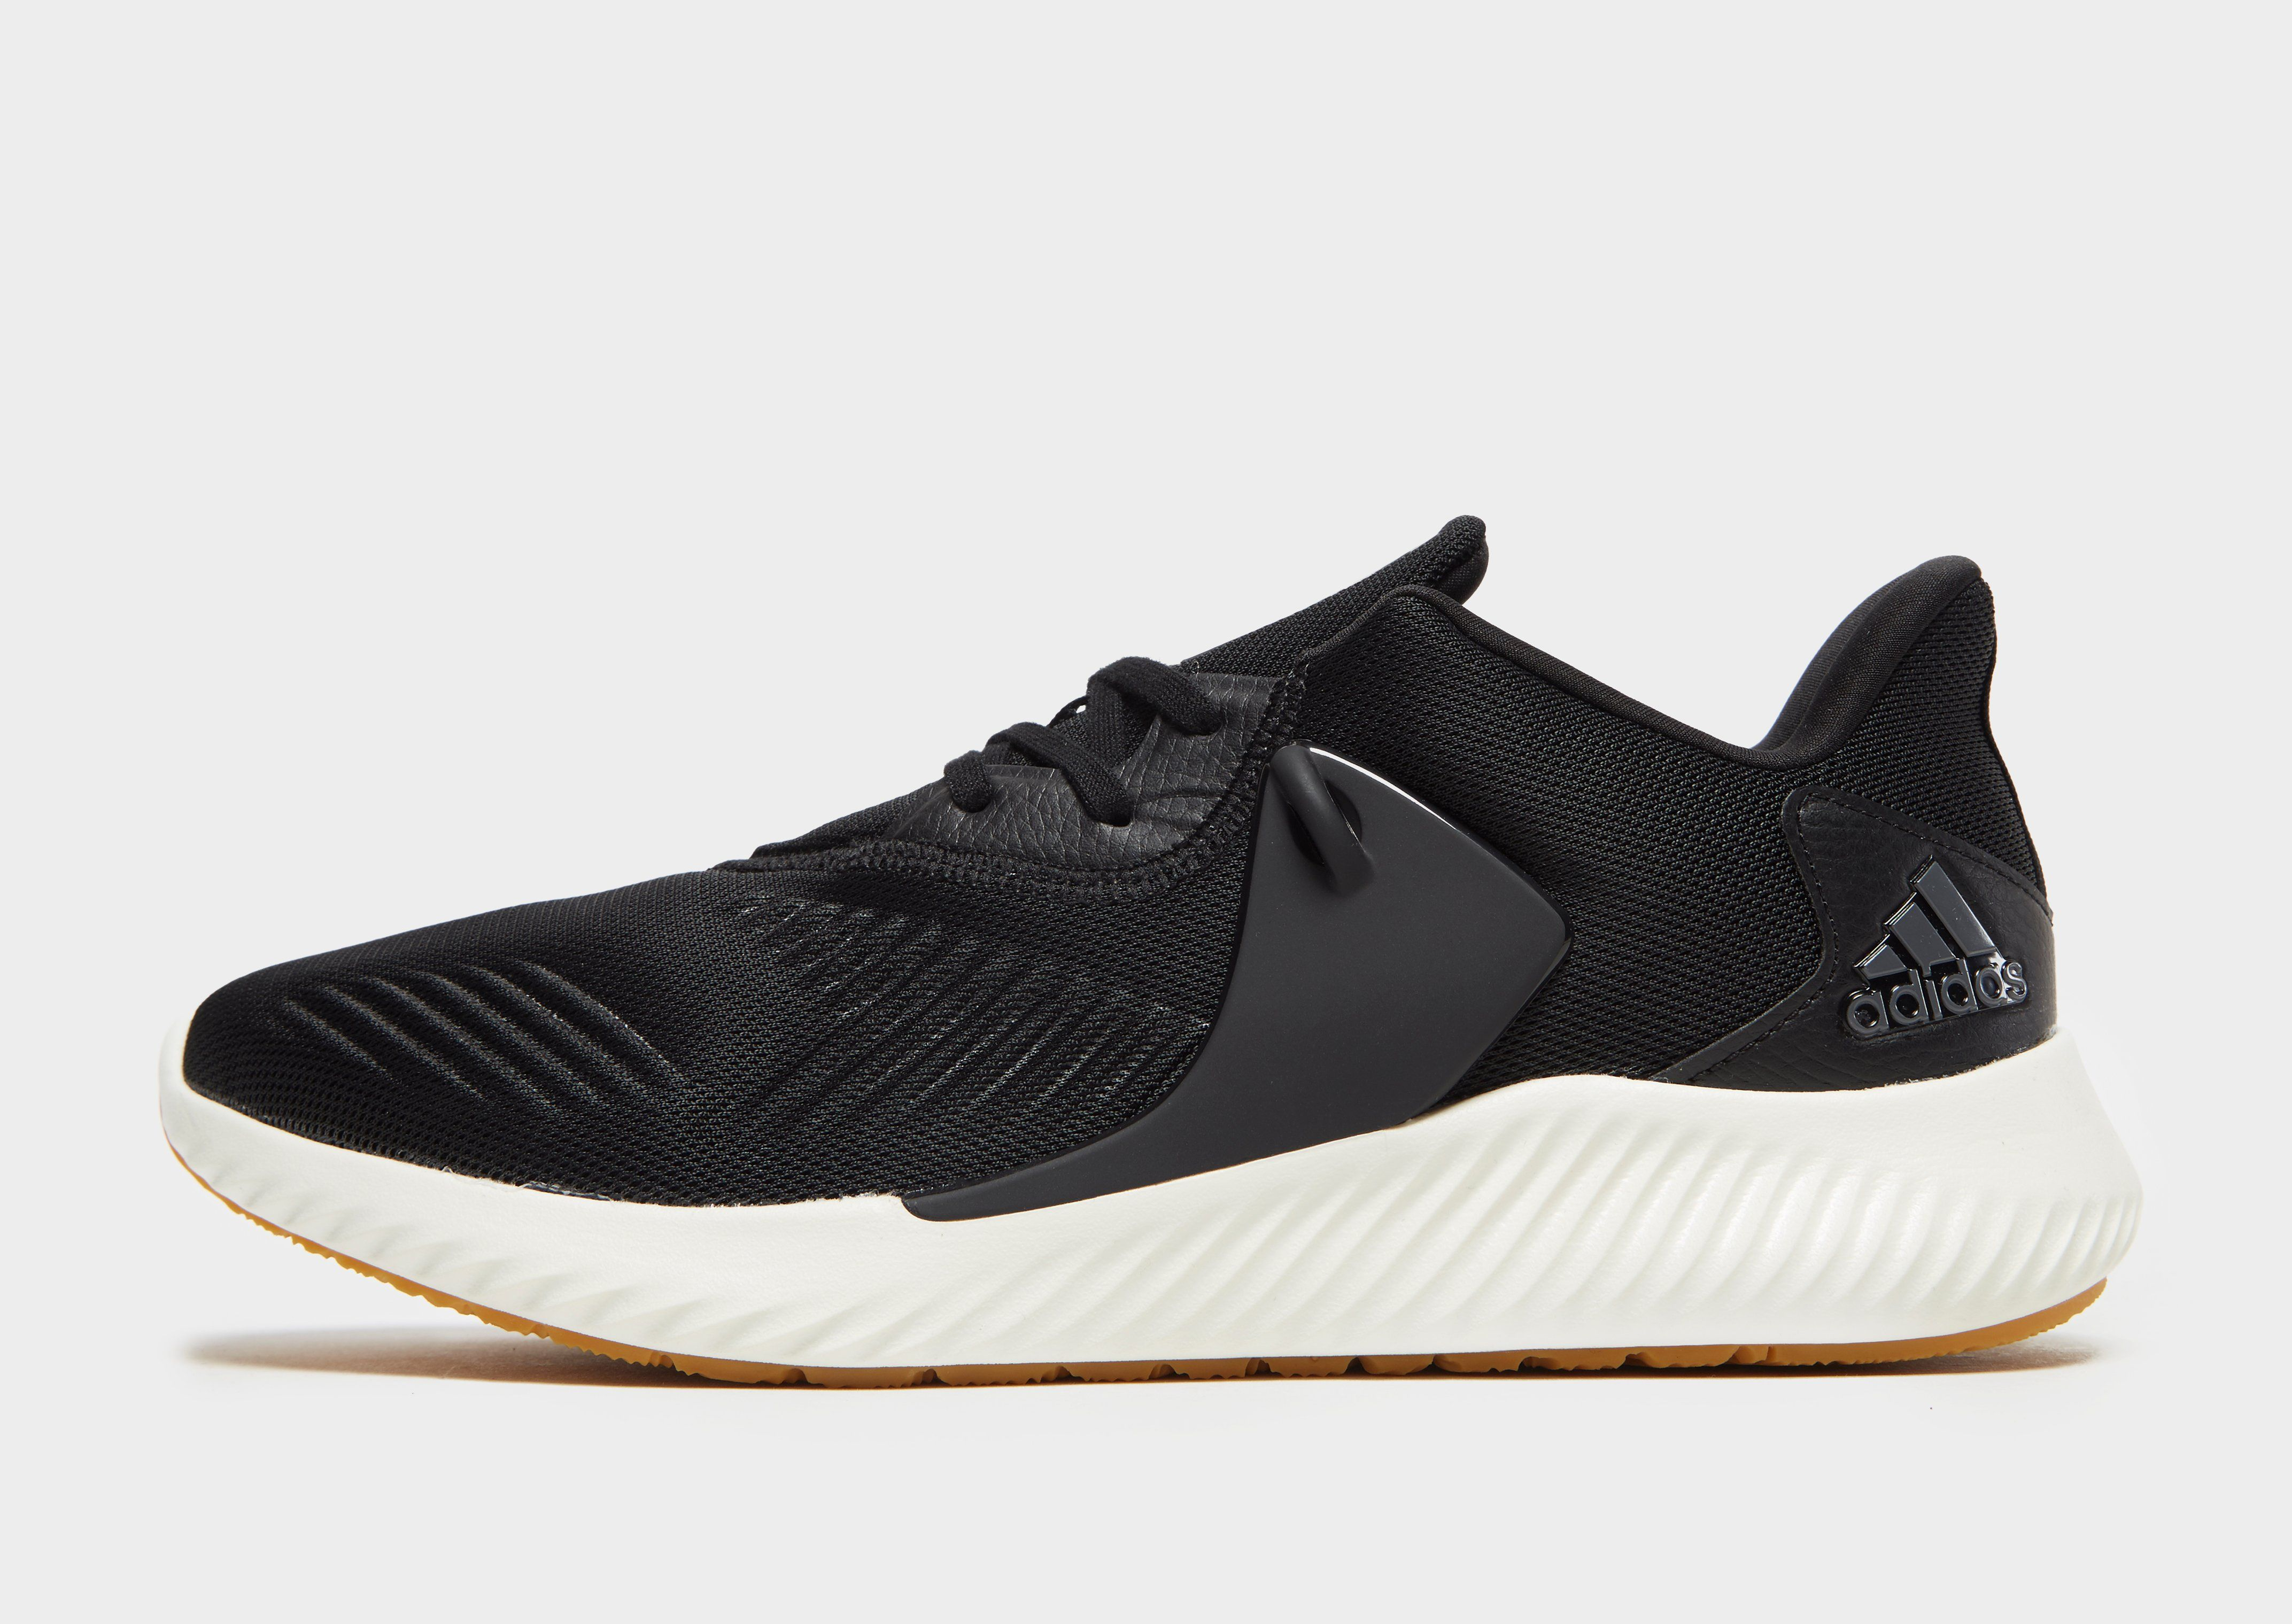 ADIDAS Alphabounce RC 2.0 Shoes